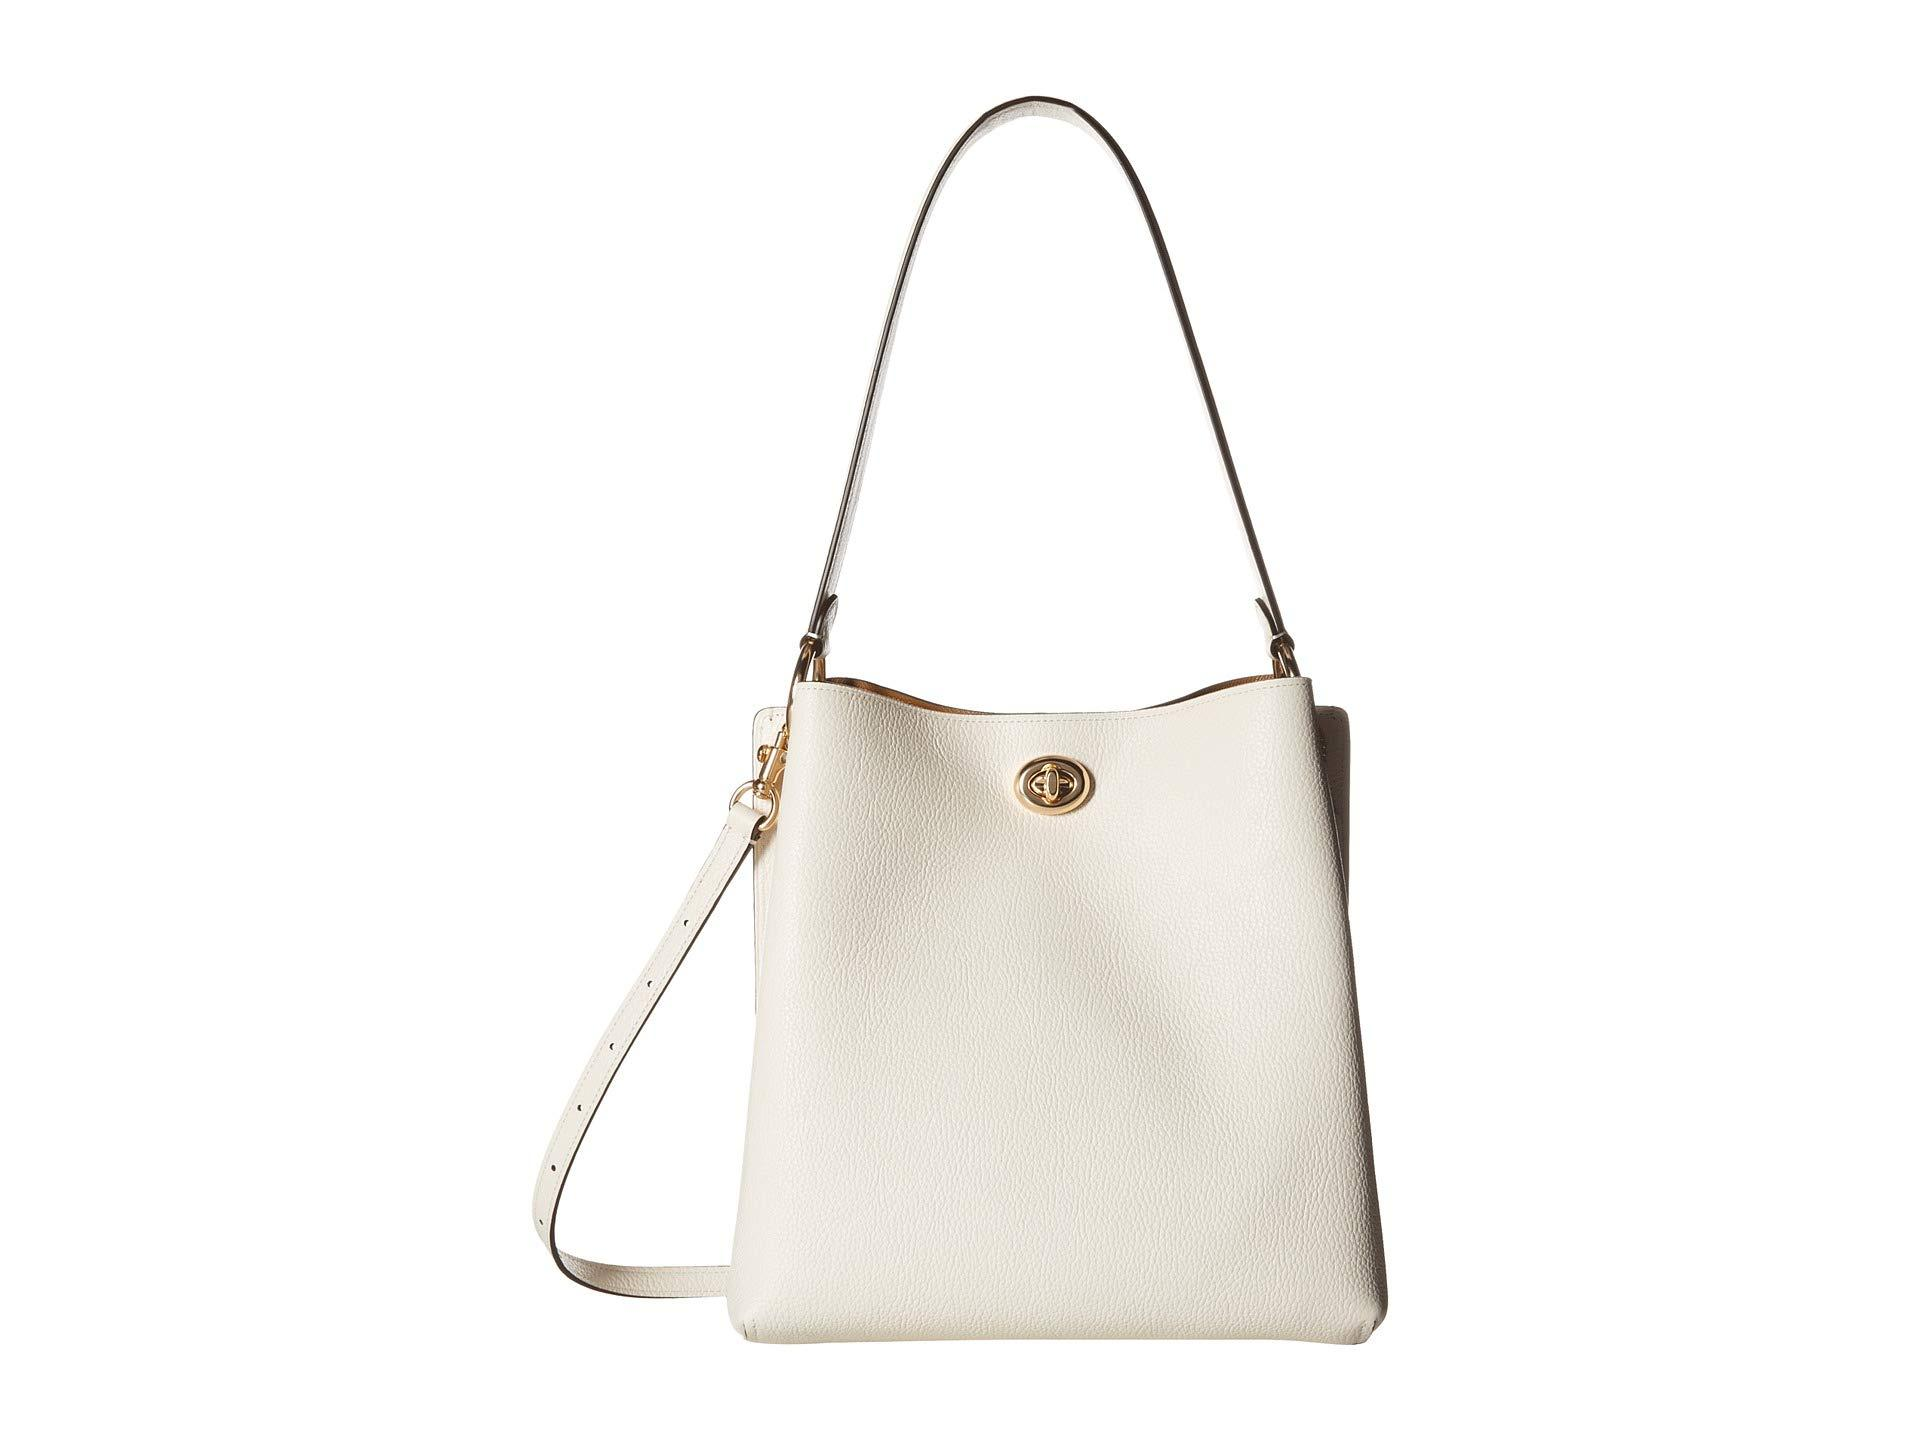 82d4deb32 COACH. Women's Metallic Polished Pebble Leather Charlie Bucket  (blossom/silver) Handbags